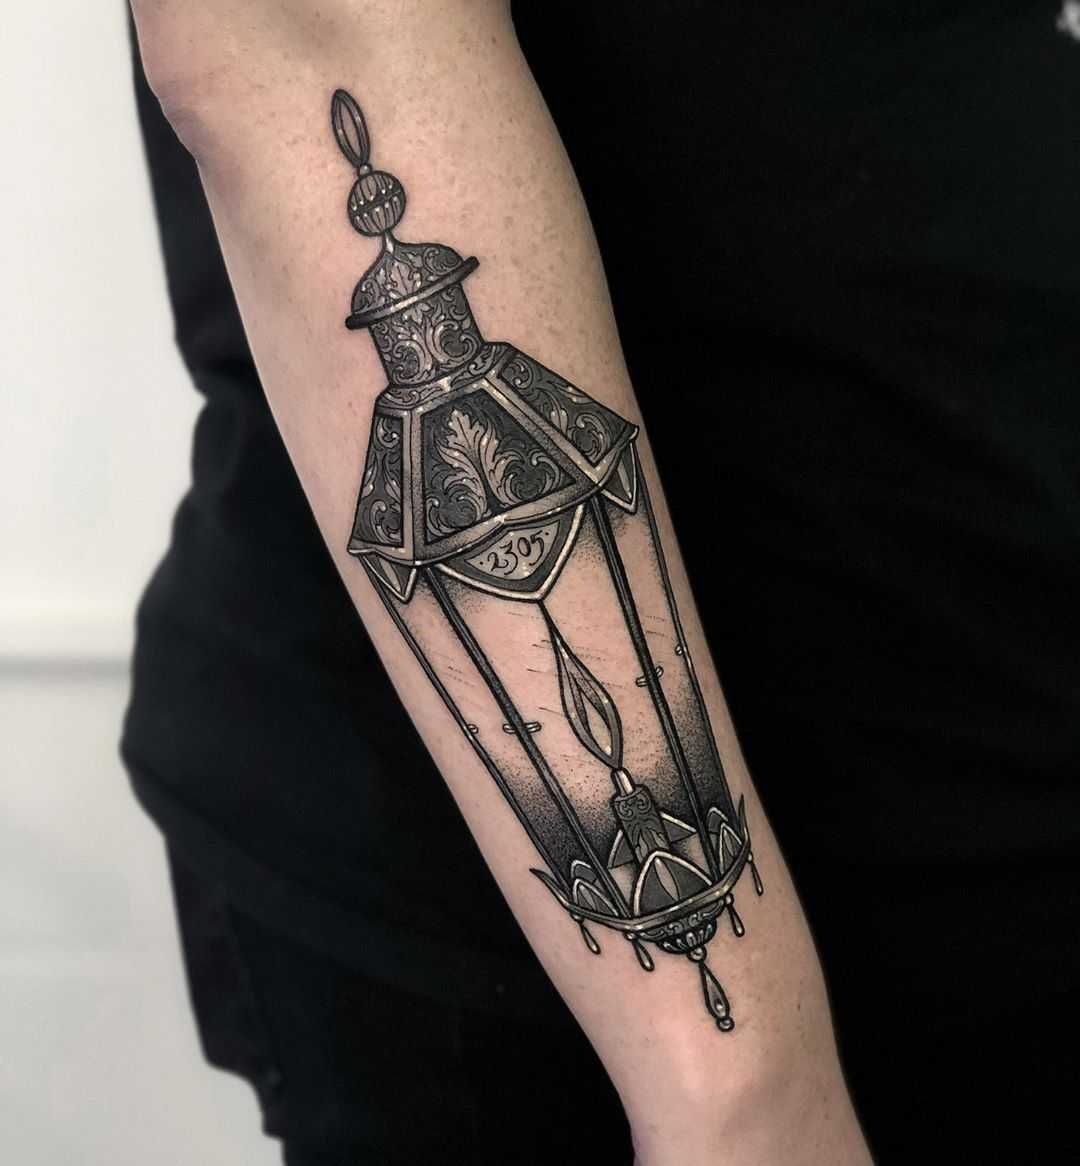 Lantern tattoo by Lozzy Bones (With images) | Lantern ...